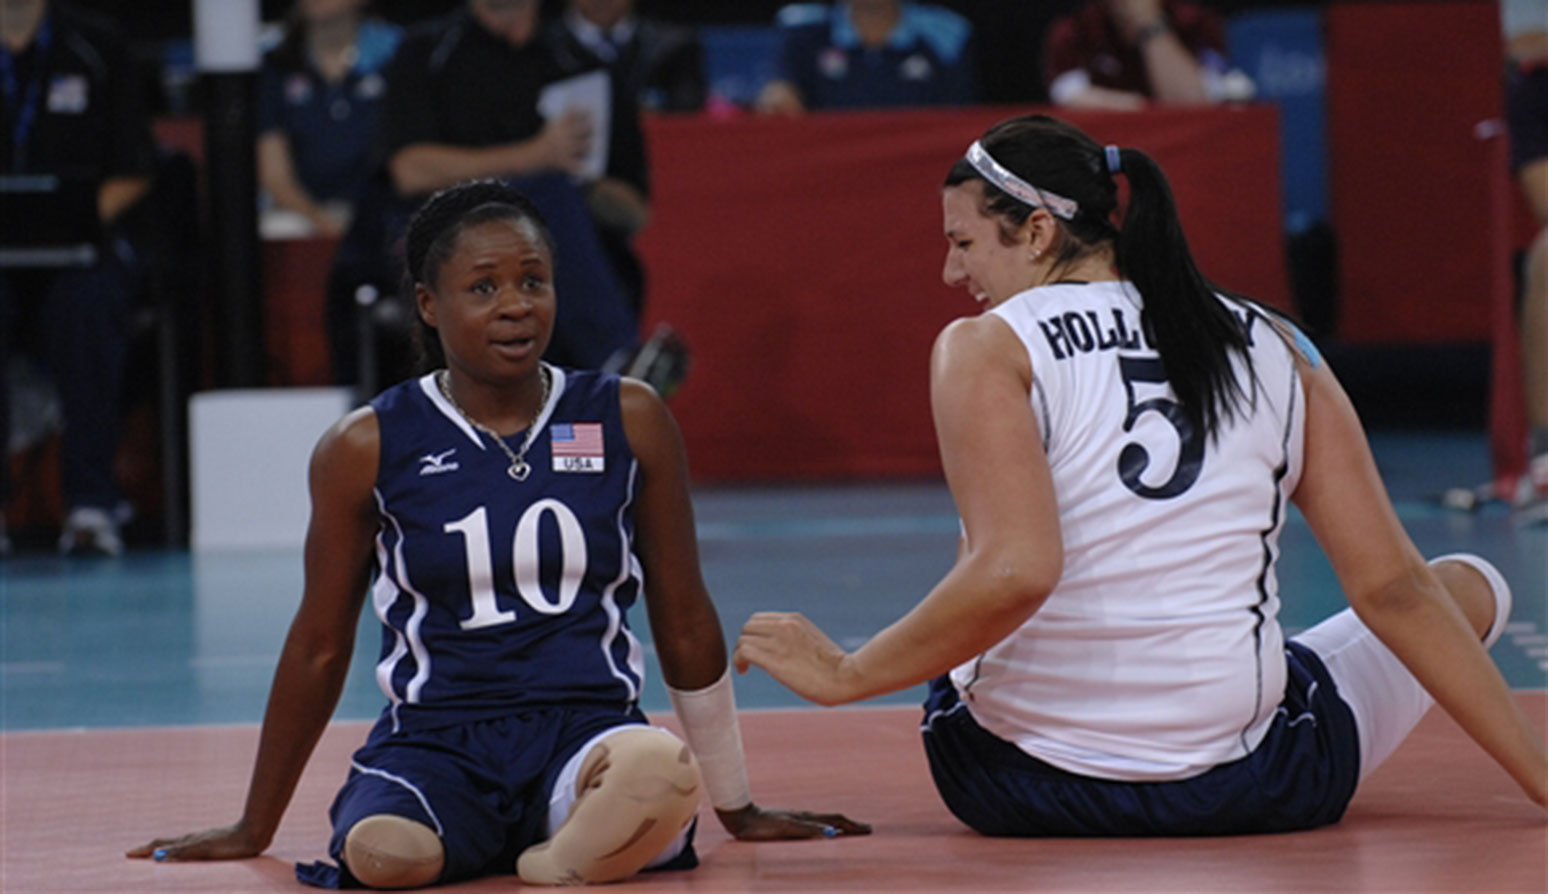 Kari Miller, left, and her teammate Katie Holloway, during their match against China at the 2012 London Paralympic Games.